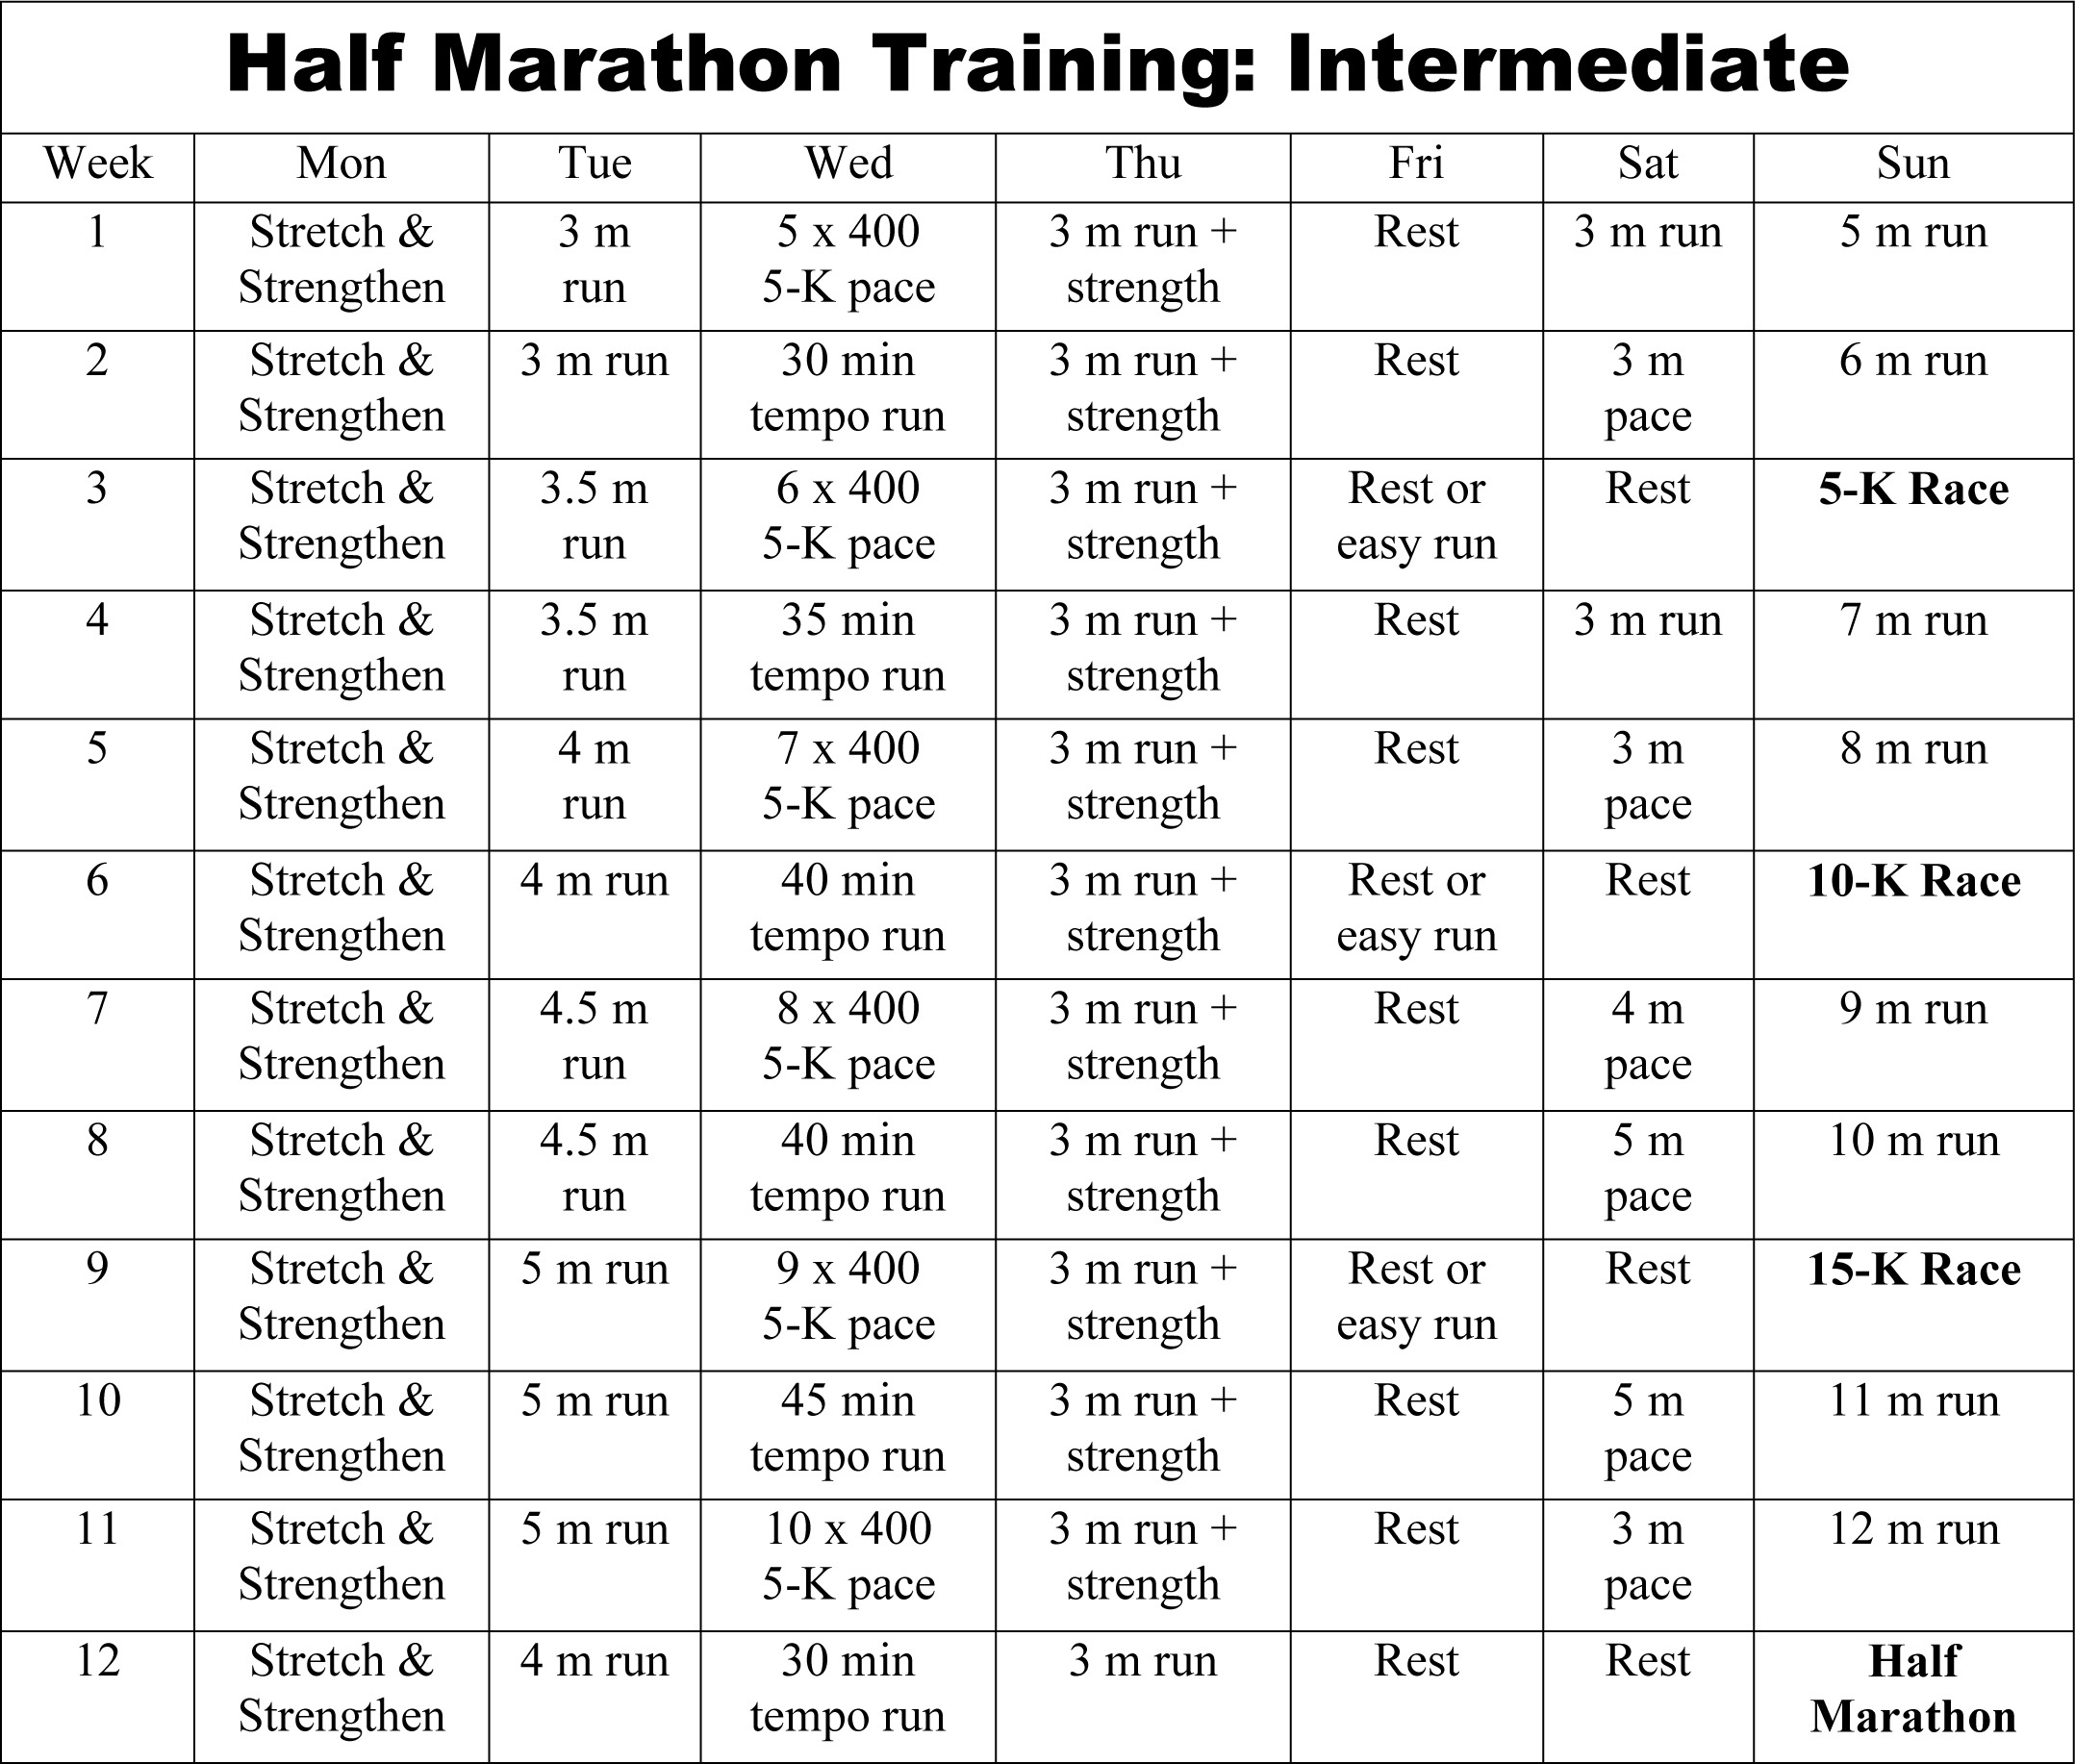 Intermediate Half-Marathon Training Schedule images